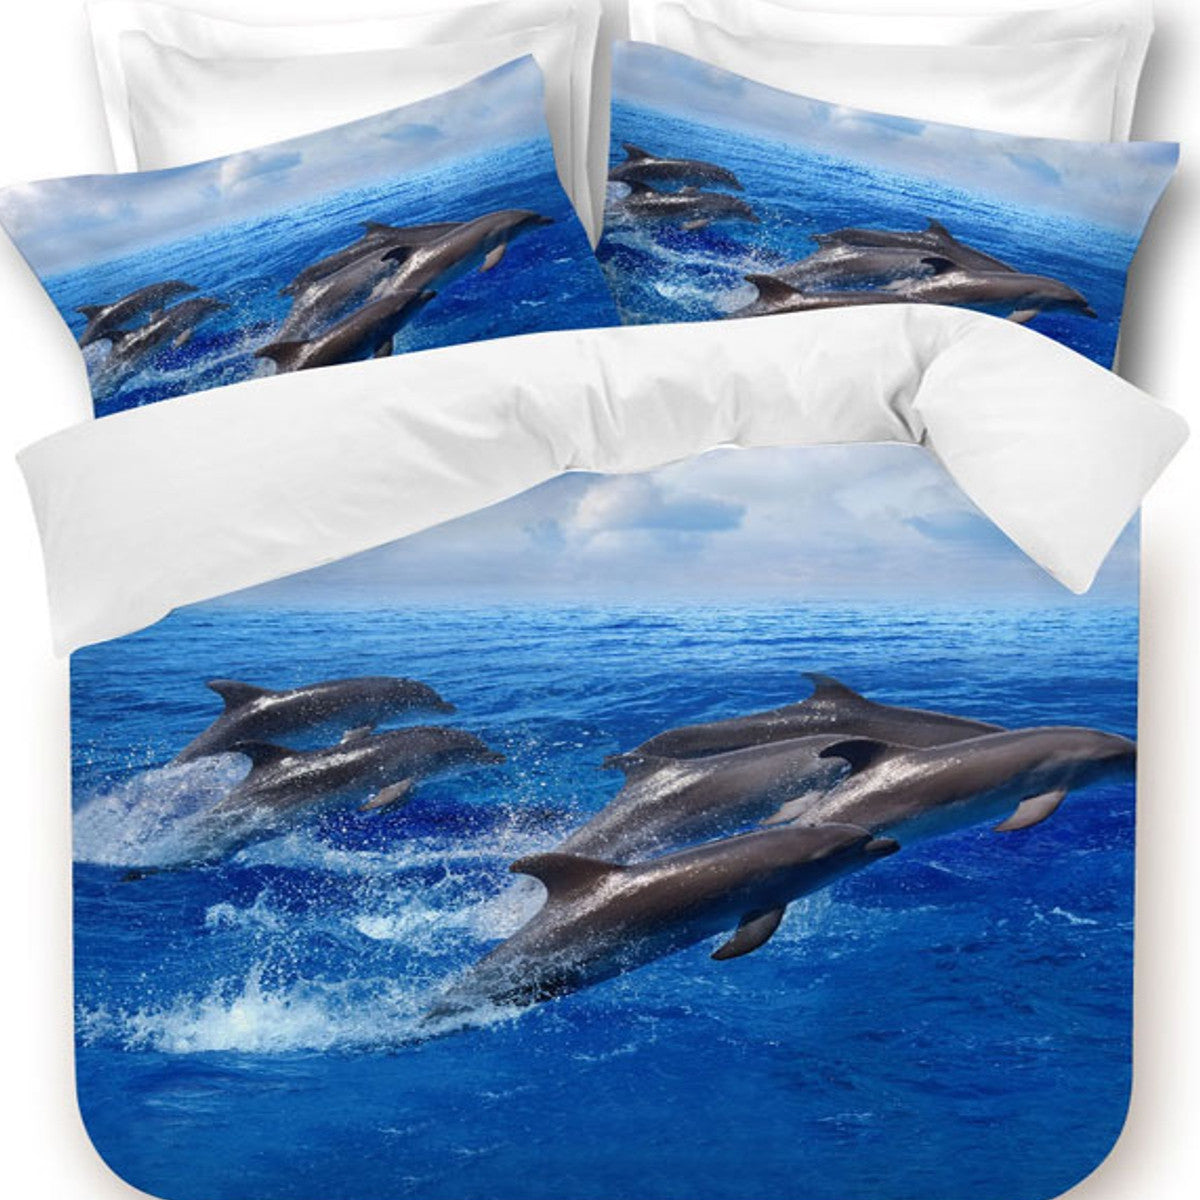 Dolphin Quilt Cover Set | Baines Manchester : dolphin quilt - Adamdwight.com